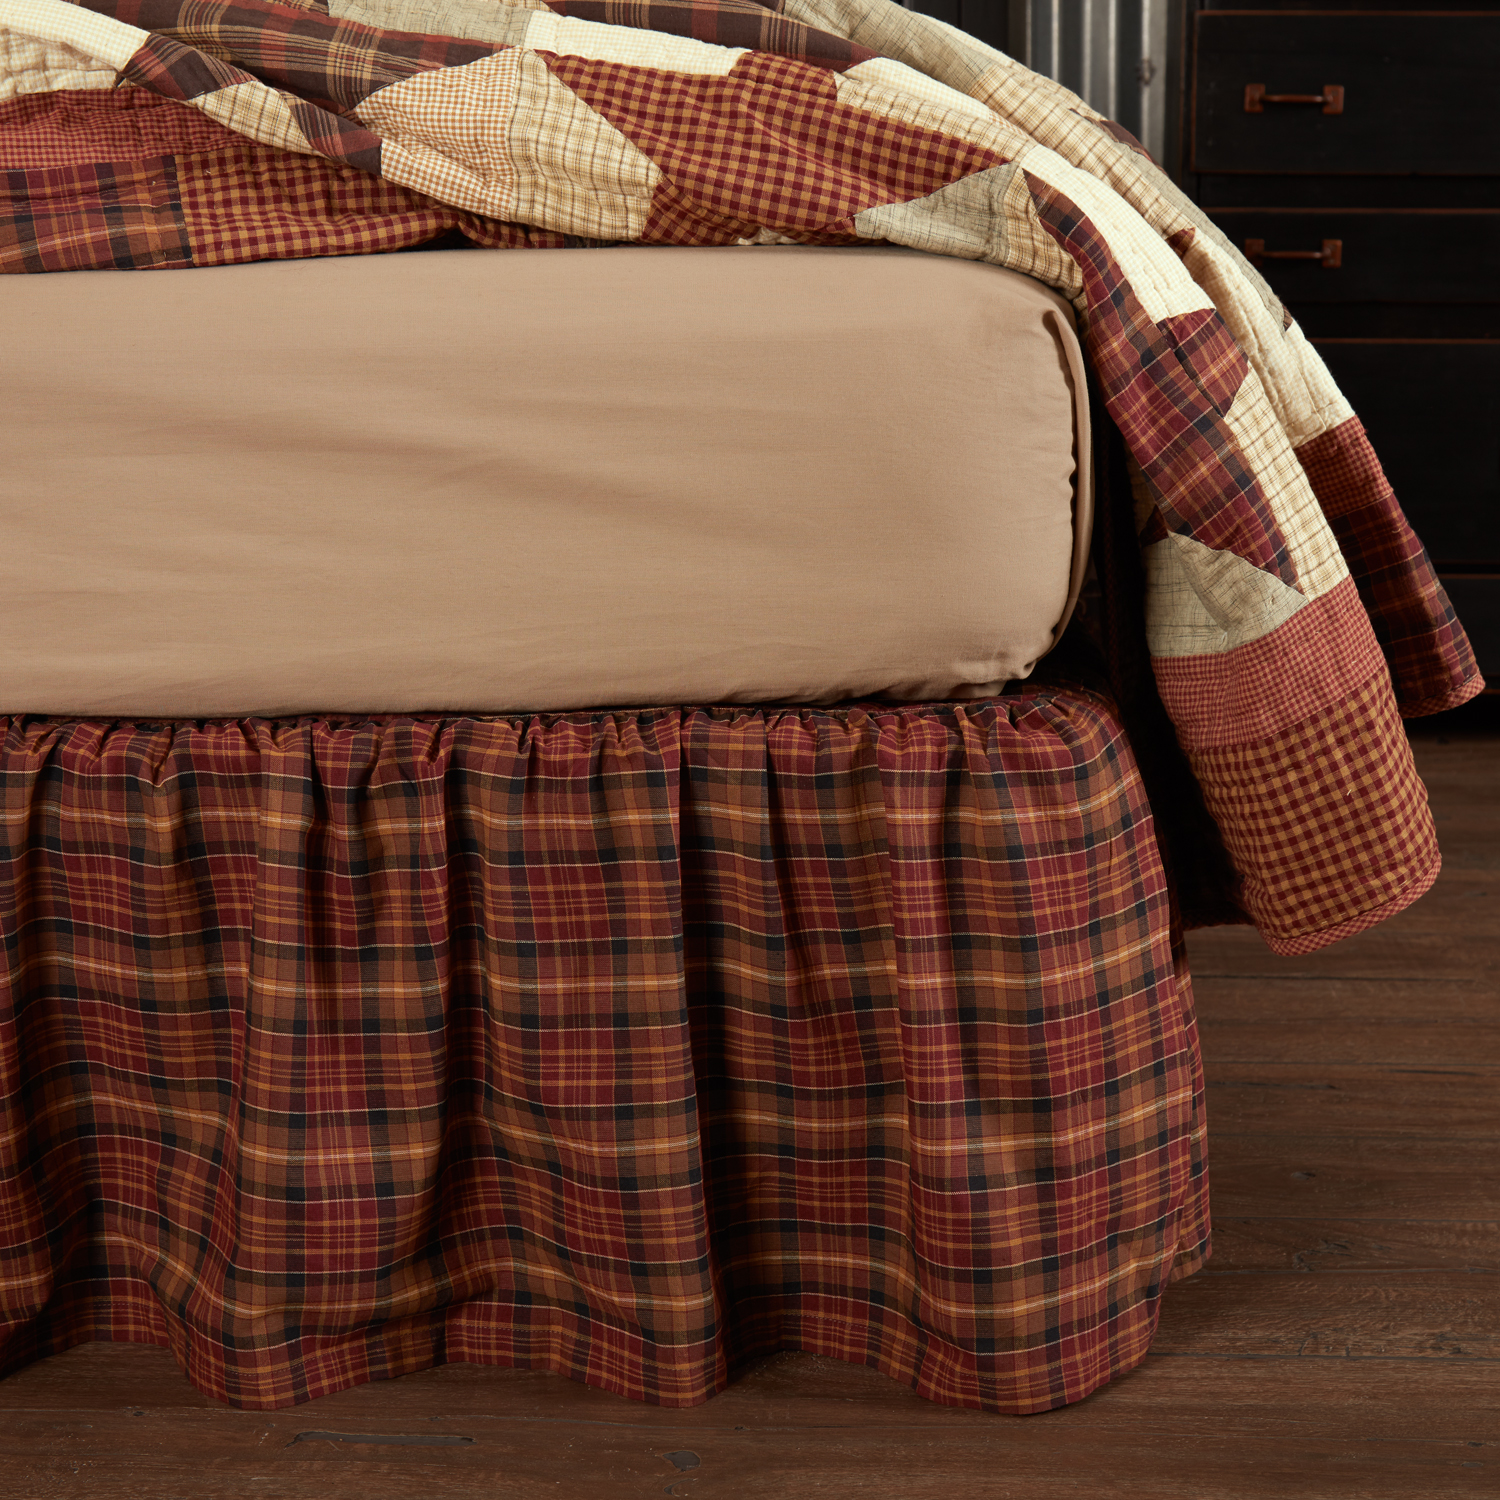 Abilene-Star-King-Bed-Skirt-78x80x16-image-1